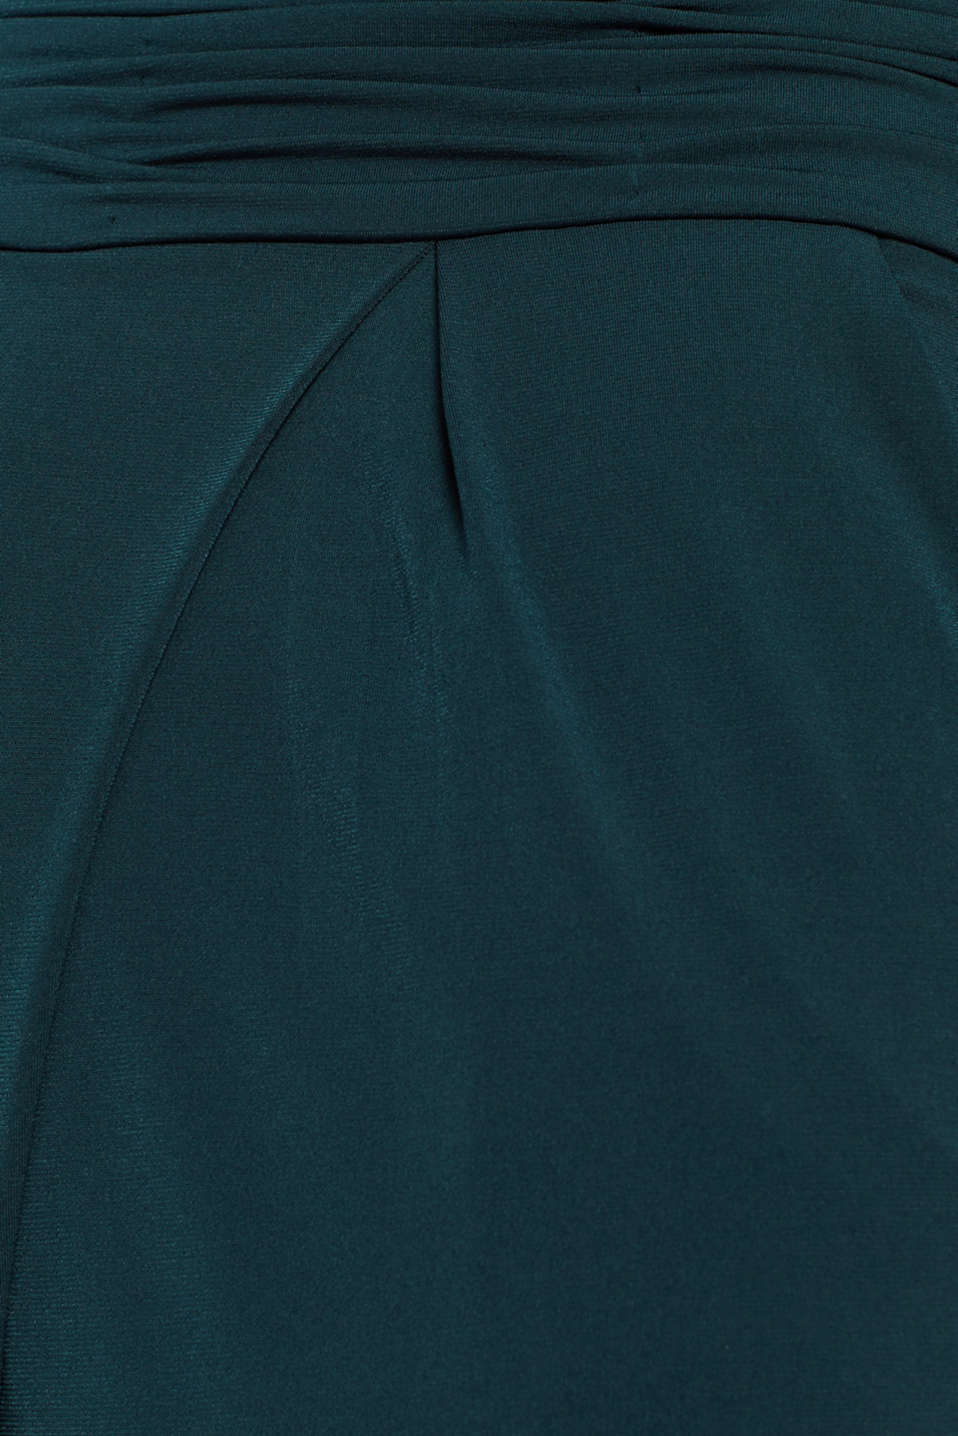 Overalls knitted, DARK TEAL GREEN, detail image number 3